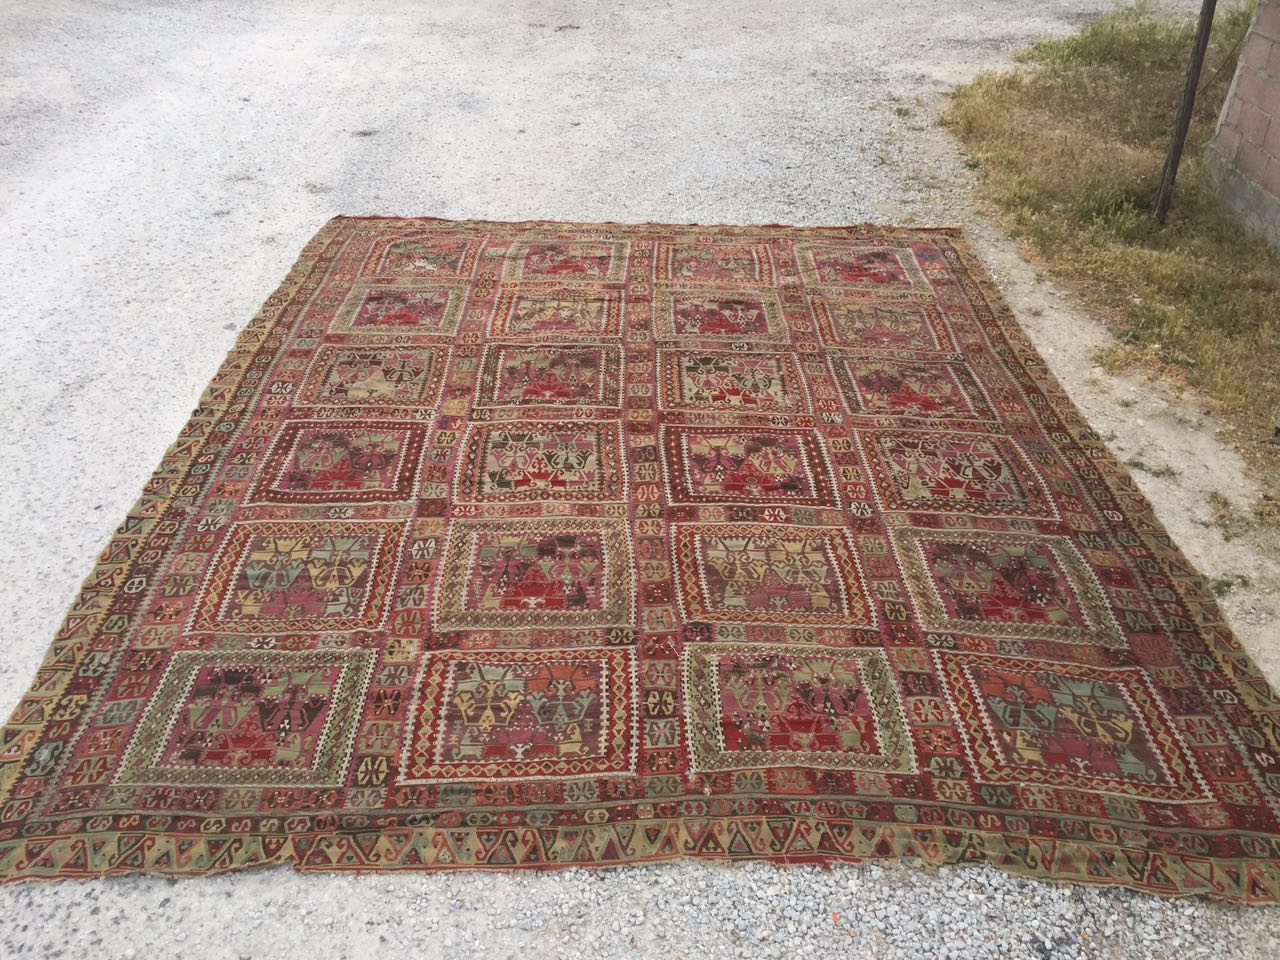 13125 Antique Anatolian kilim rug (10)